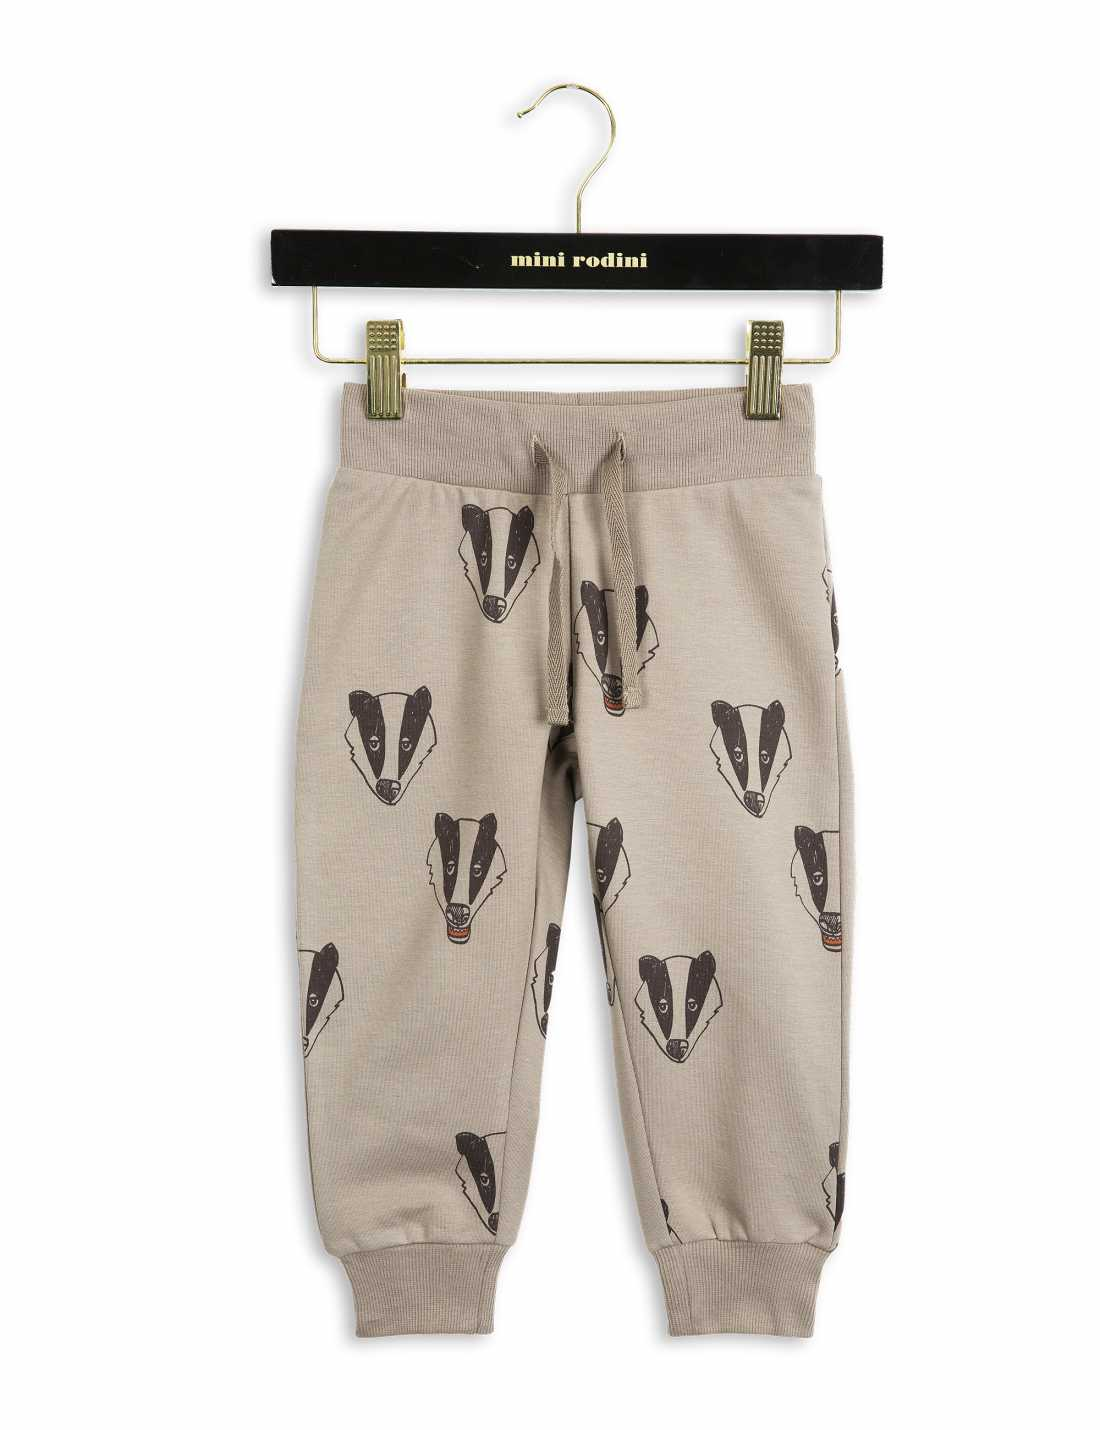 Badger Sweatpants